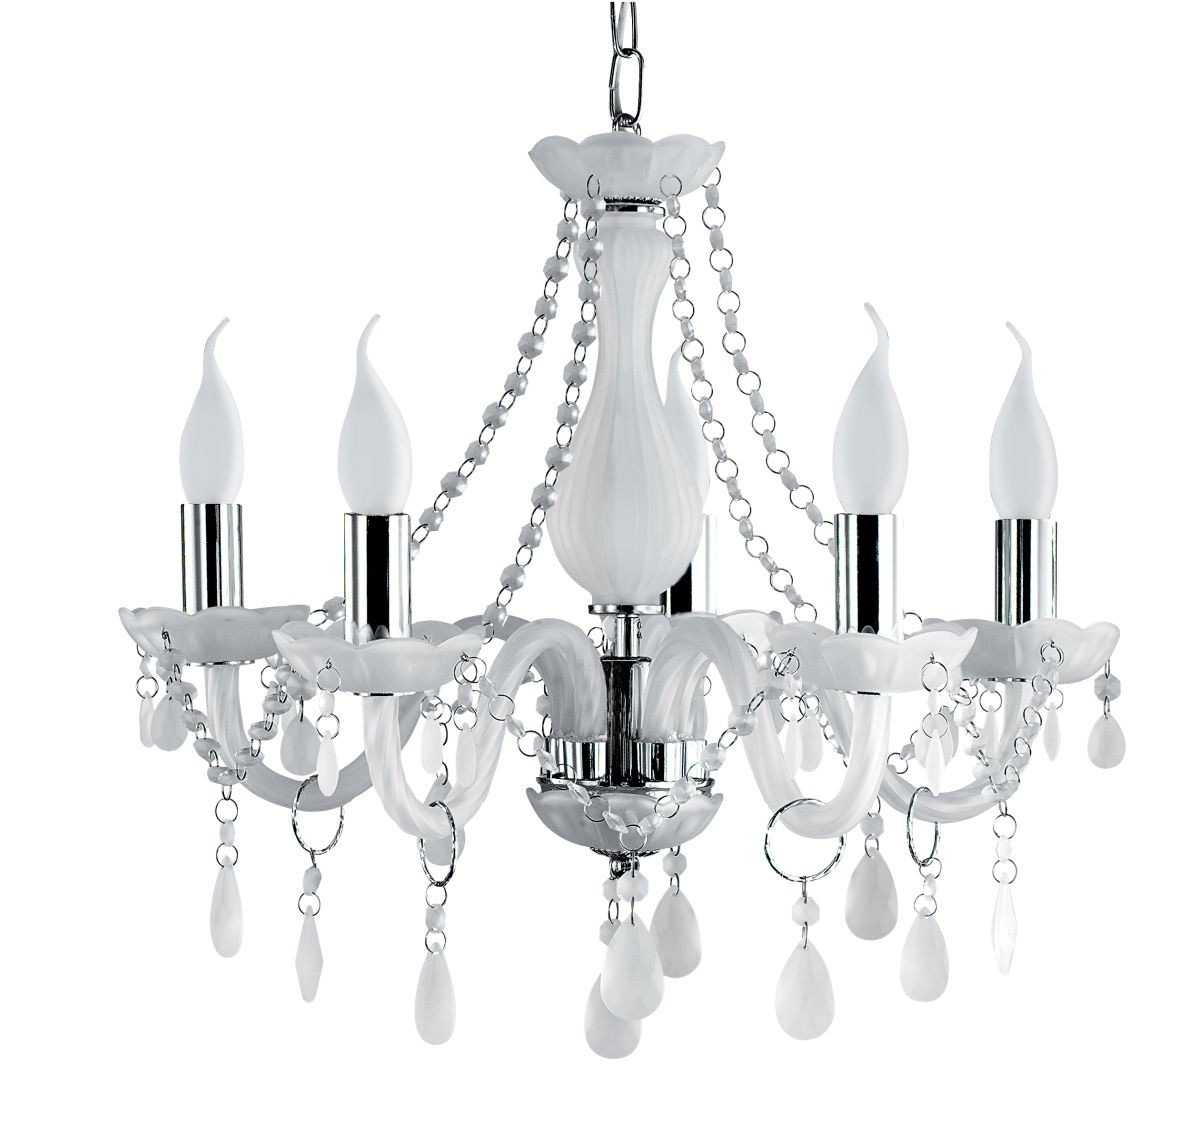 Bedroom Chandeliers Ideas (View 3 of 20)